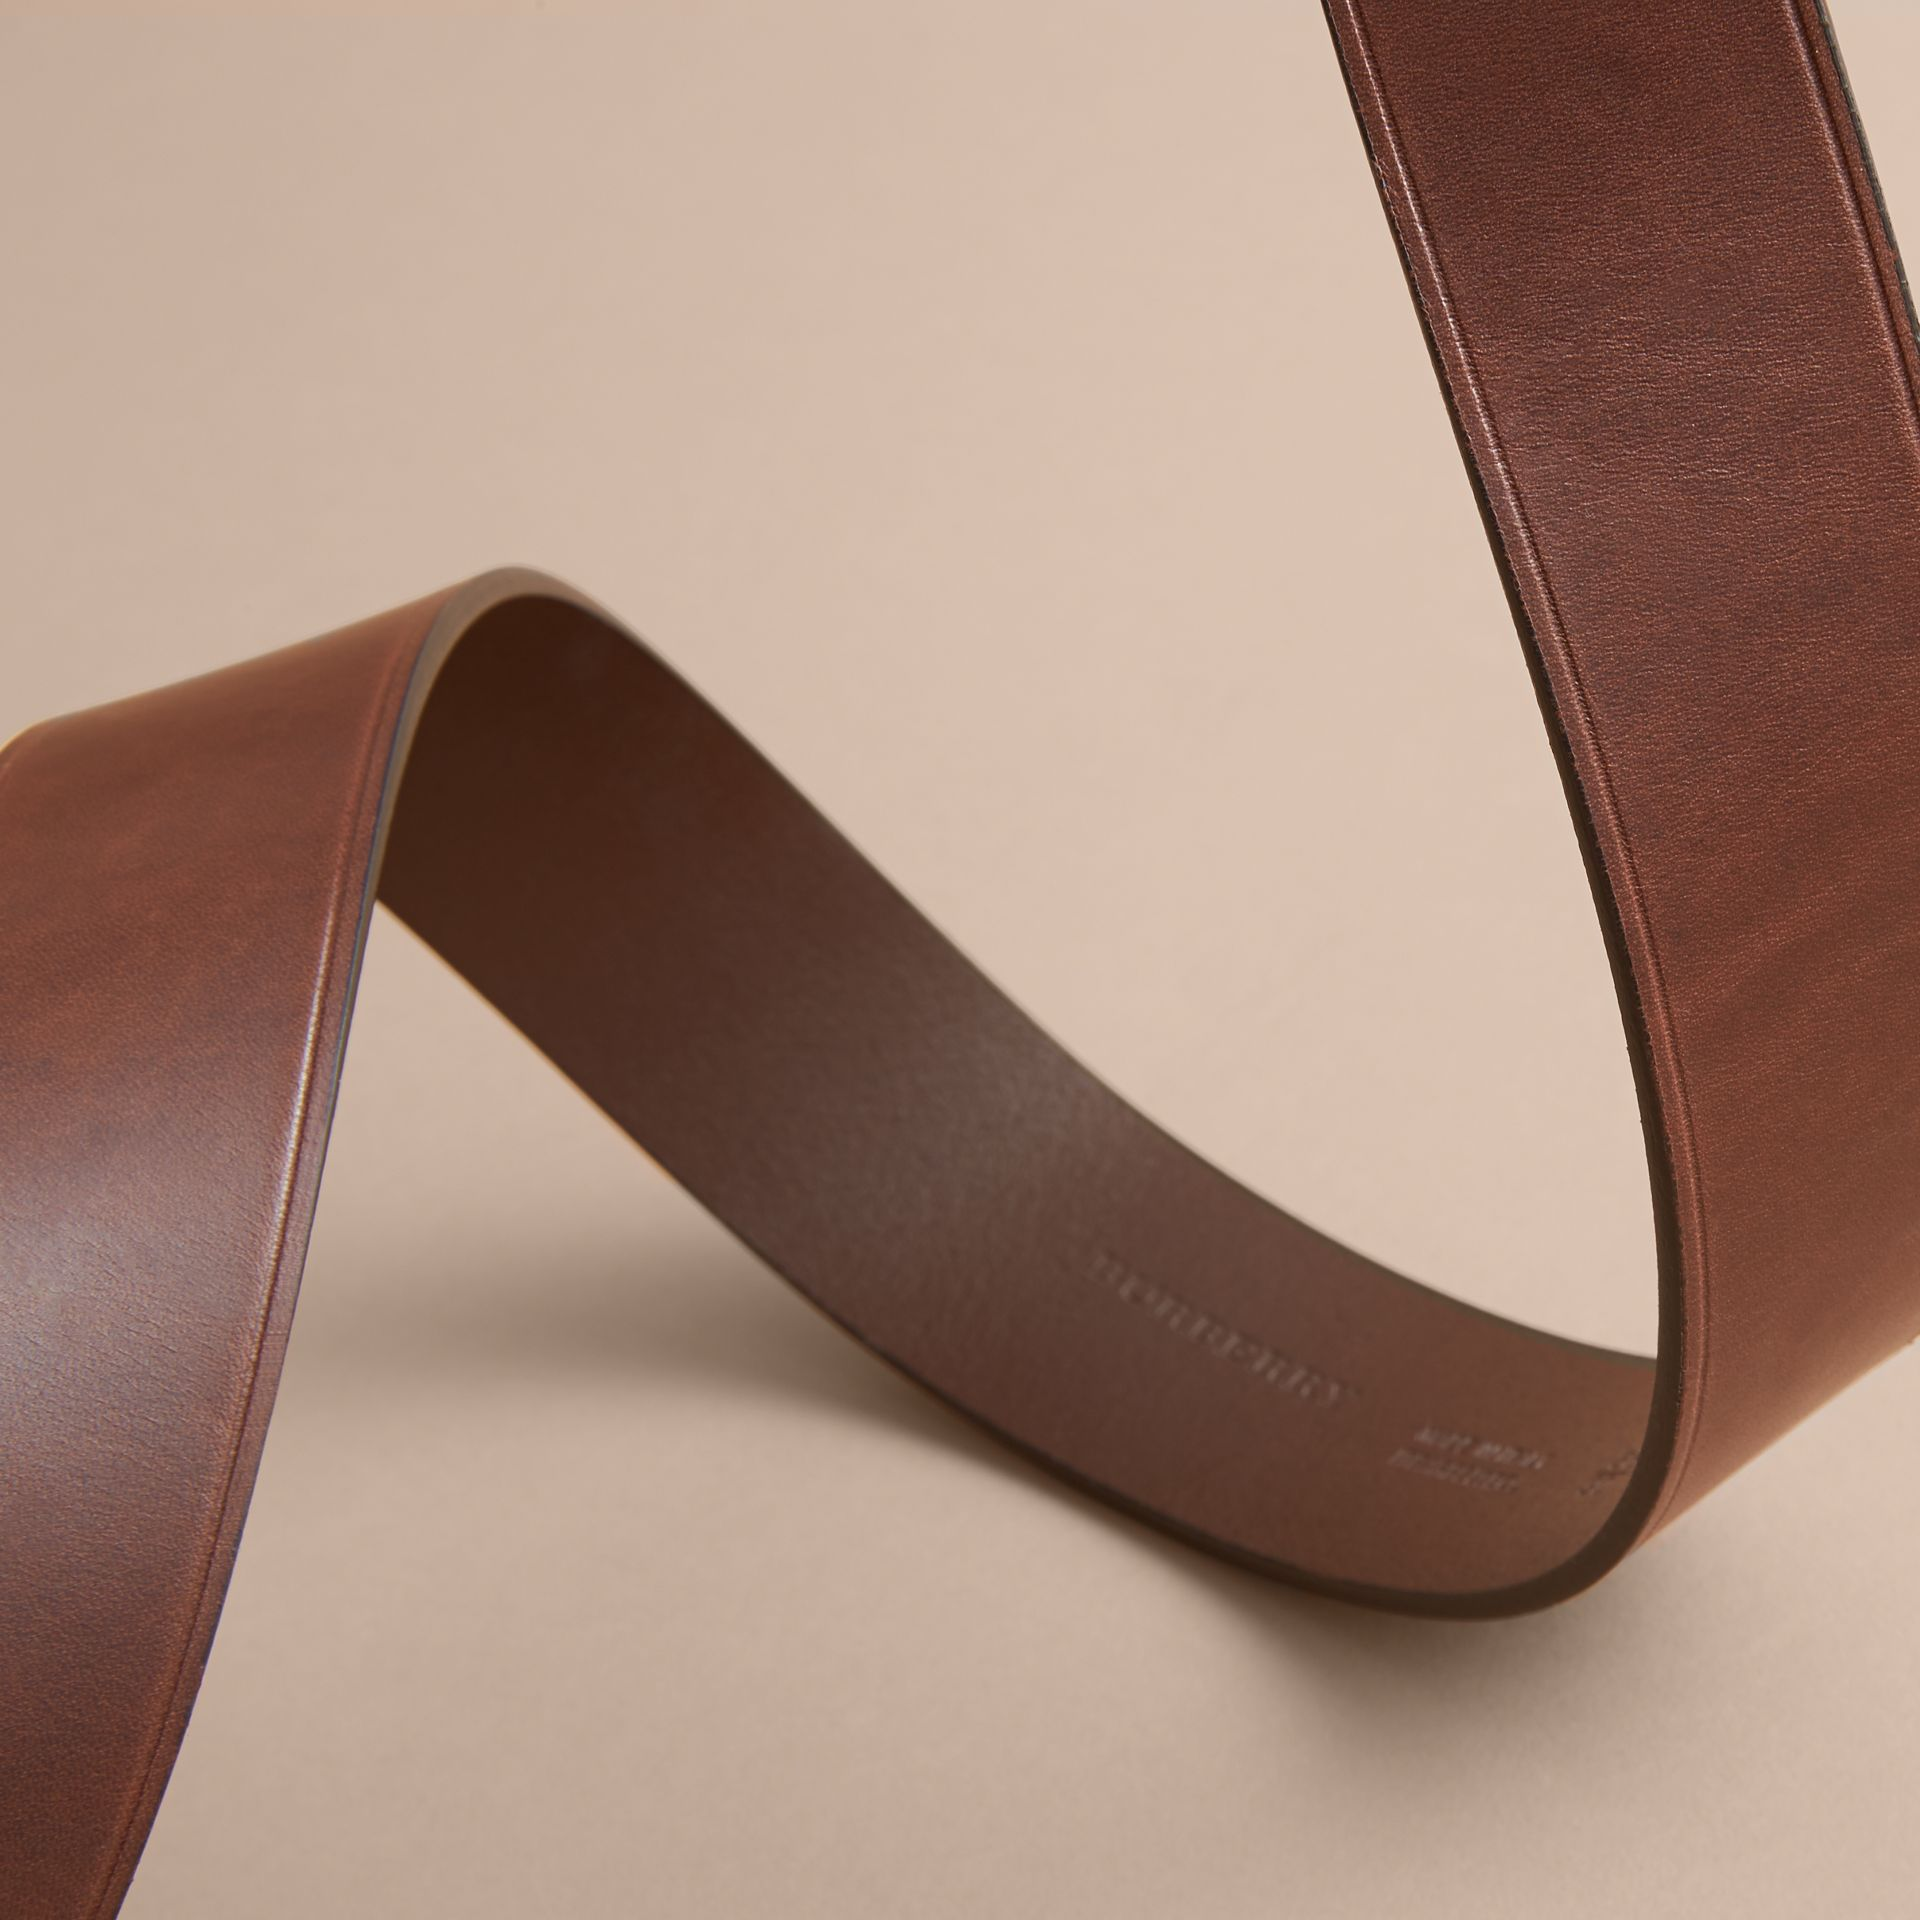 Brass Buckle Leather Belt in Auburn - Men | Burberry - gallery image 4